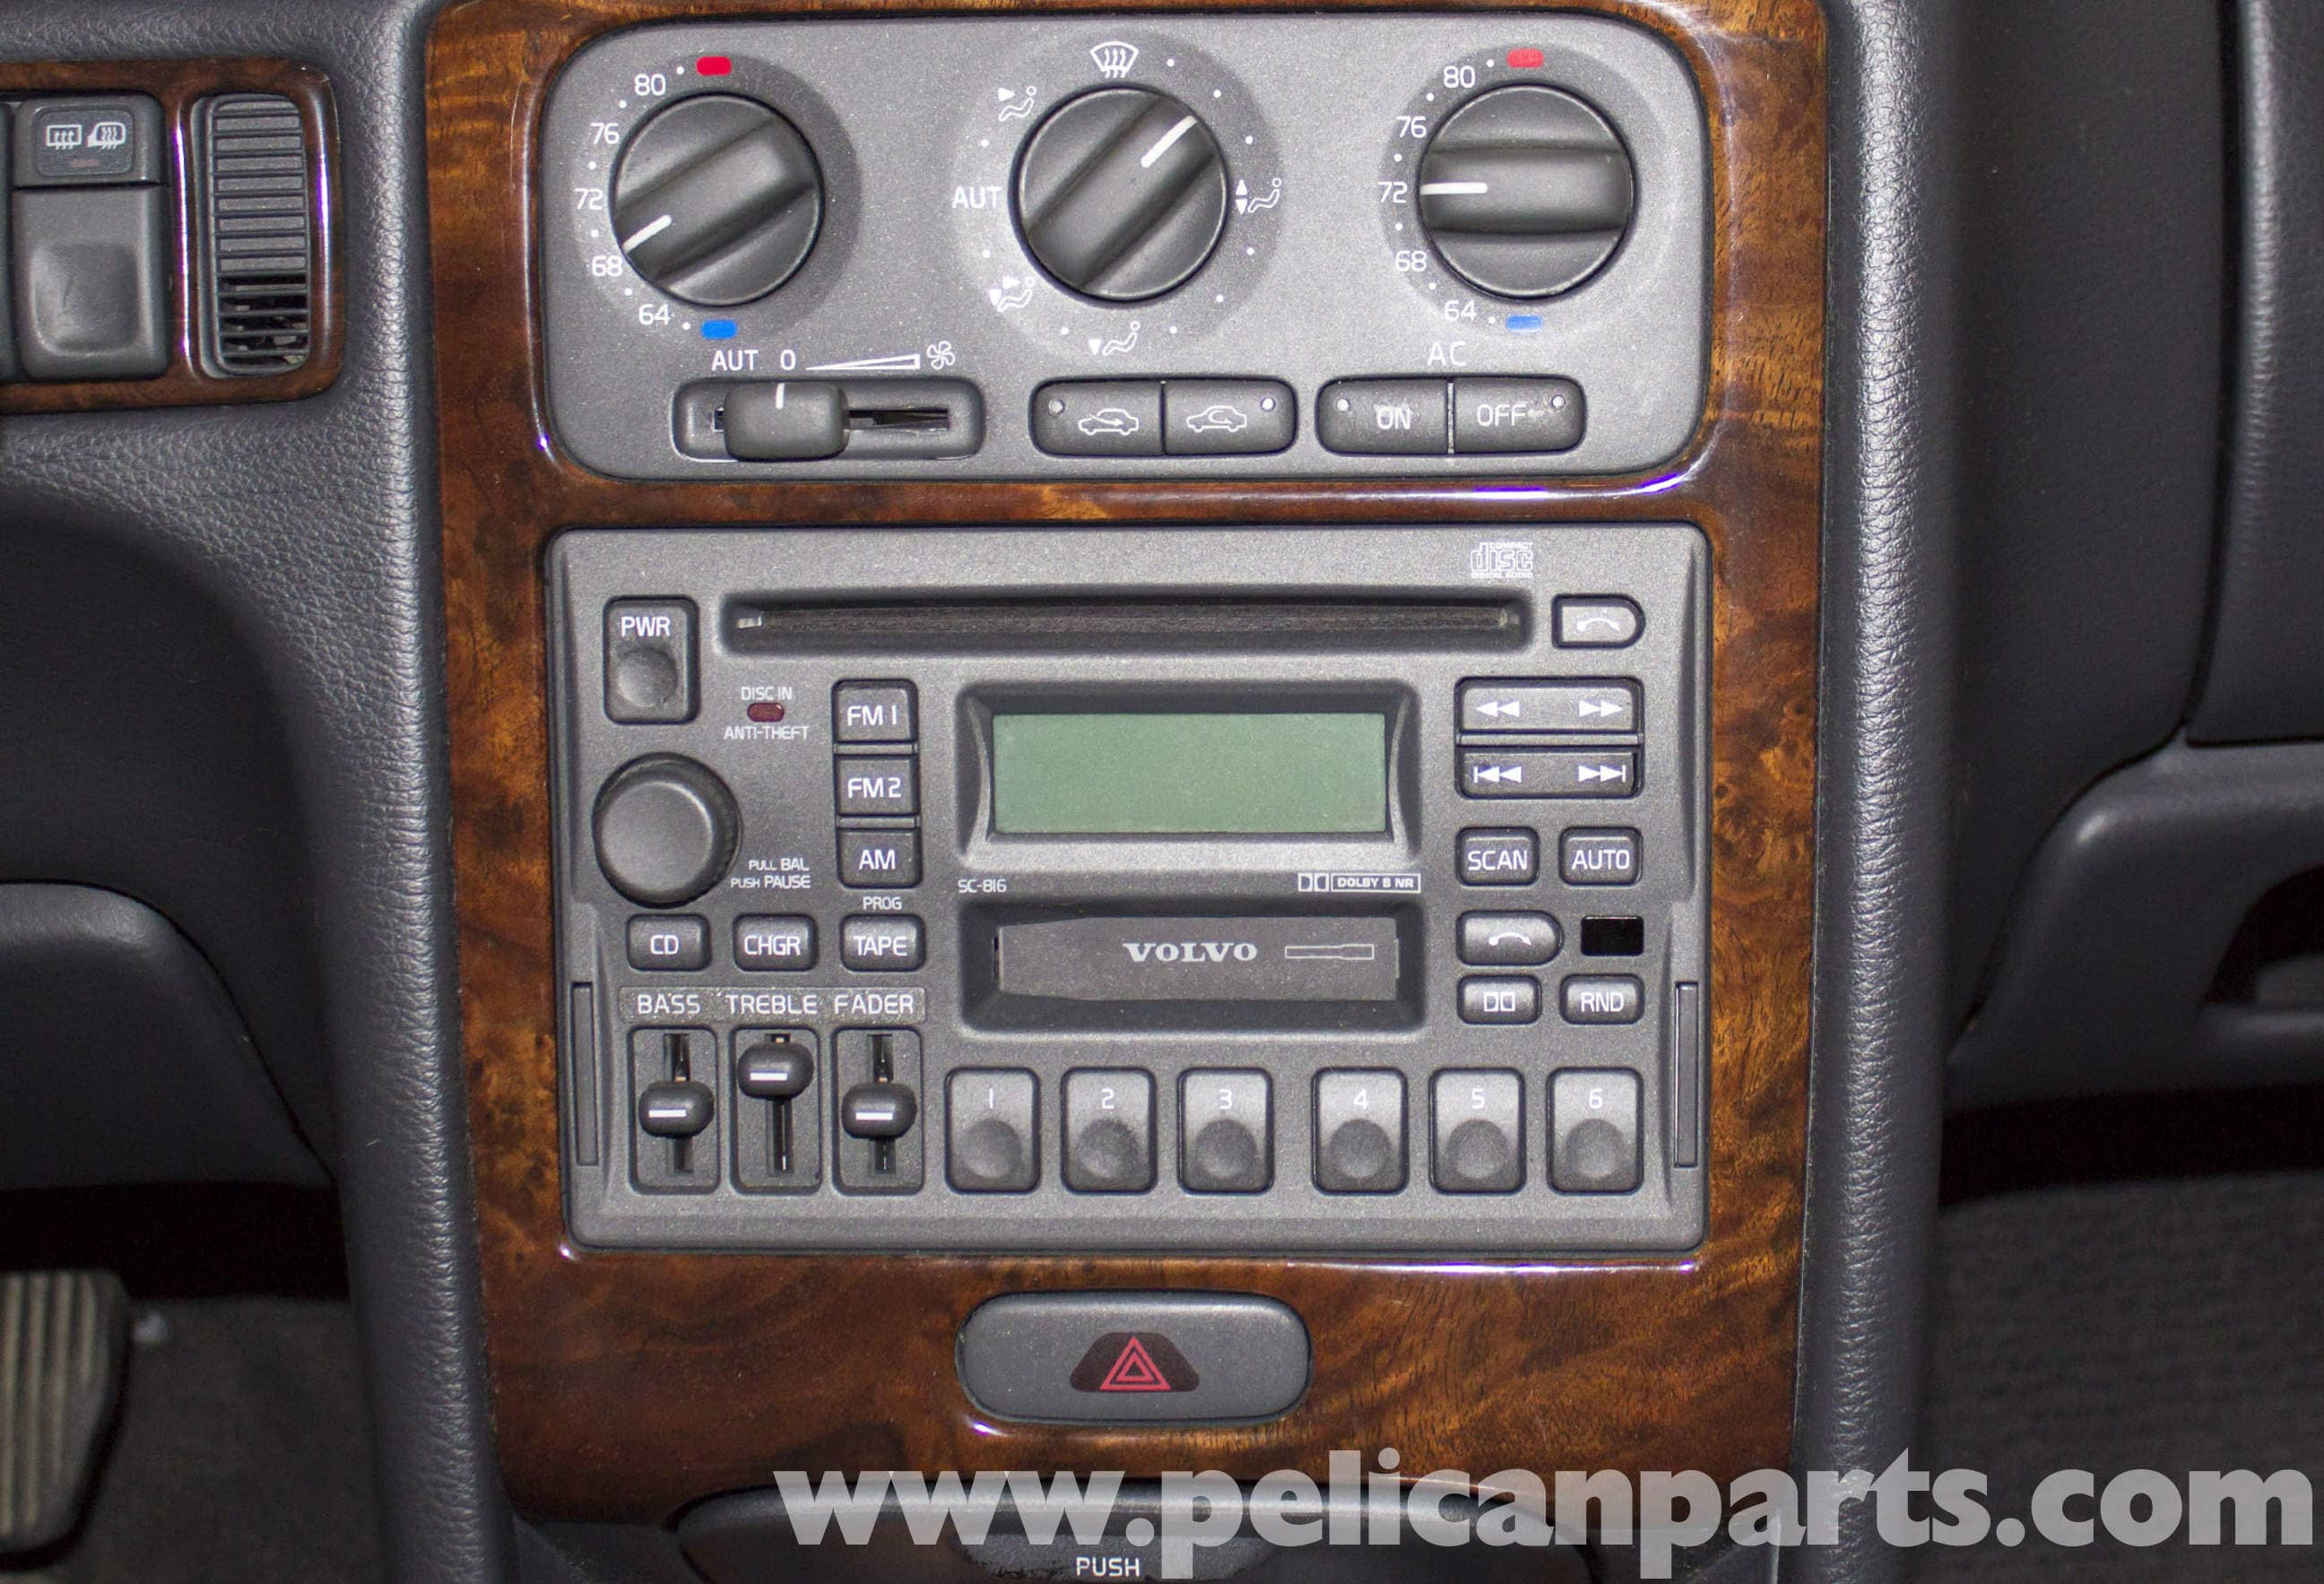 Volvo V70 Radio Replacement 1998 2007 Pelican Parts Diy Aftermarket To Factory Wiring Diagram Large Image Extra